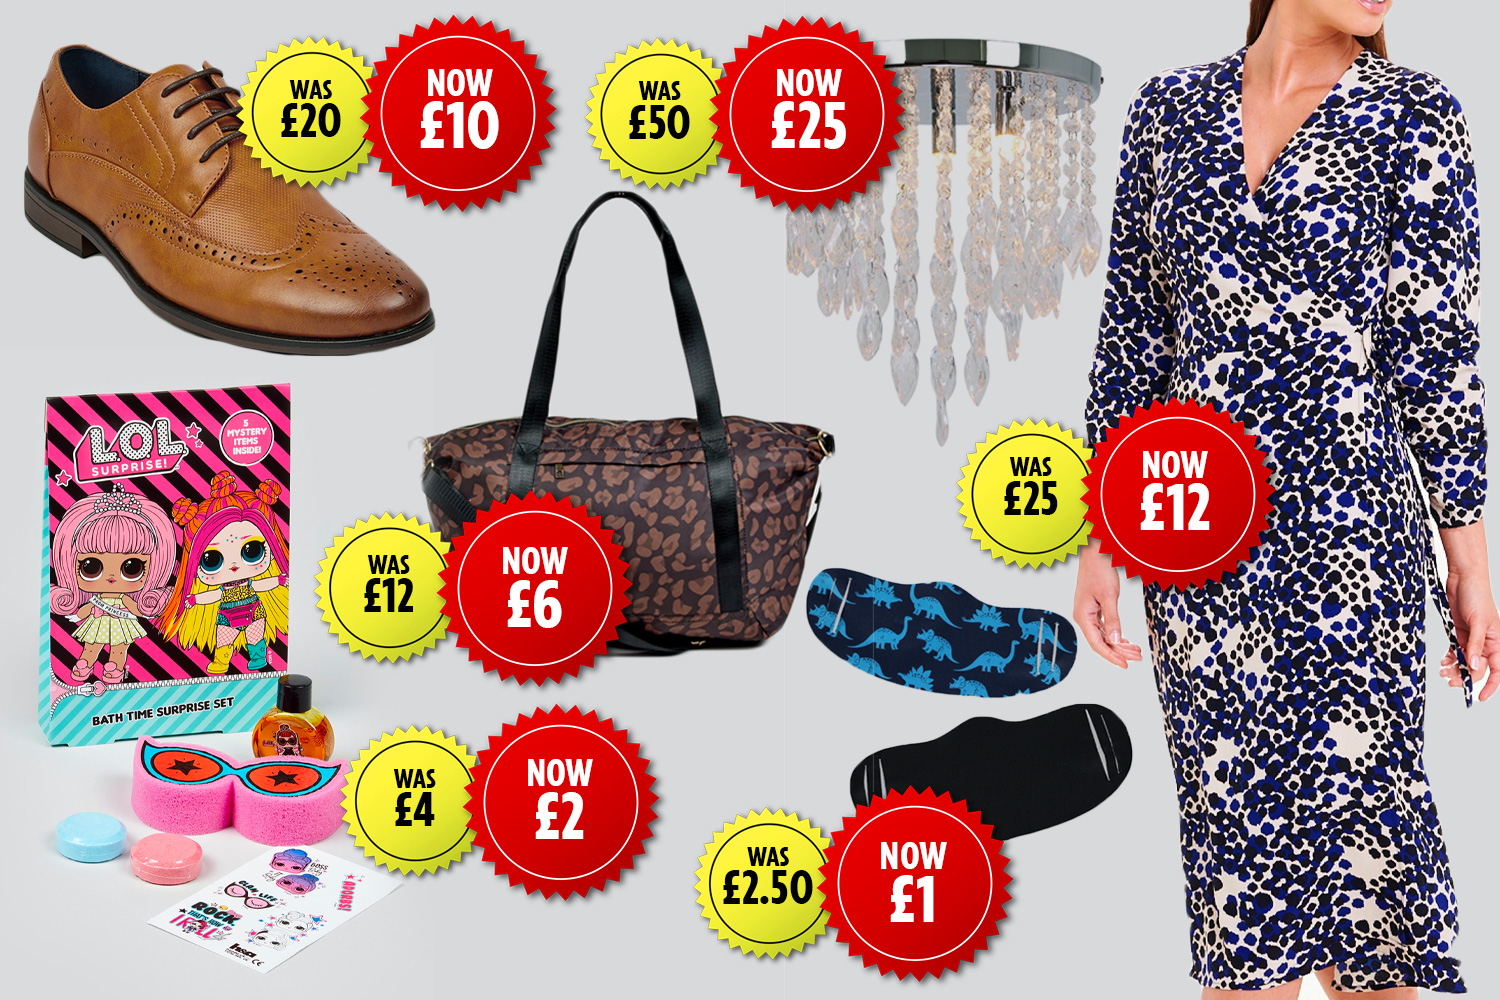 Matalan has launched a clearance sale with discounts on more than 1,100 items